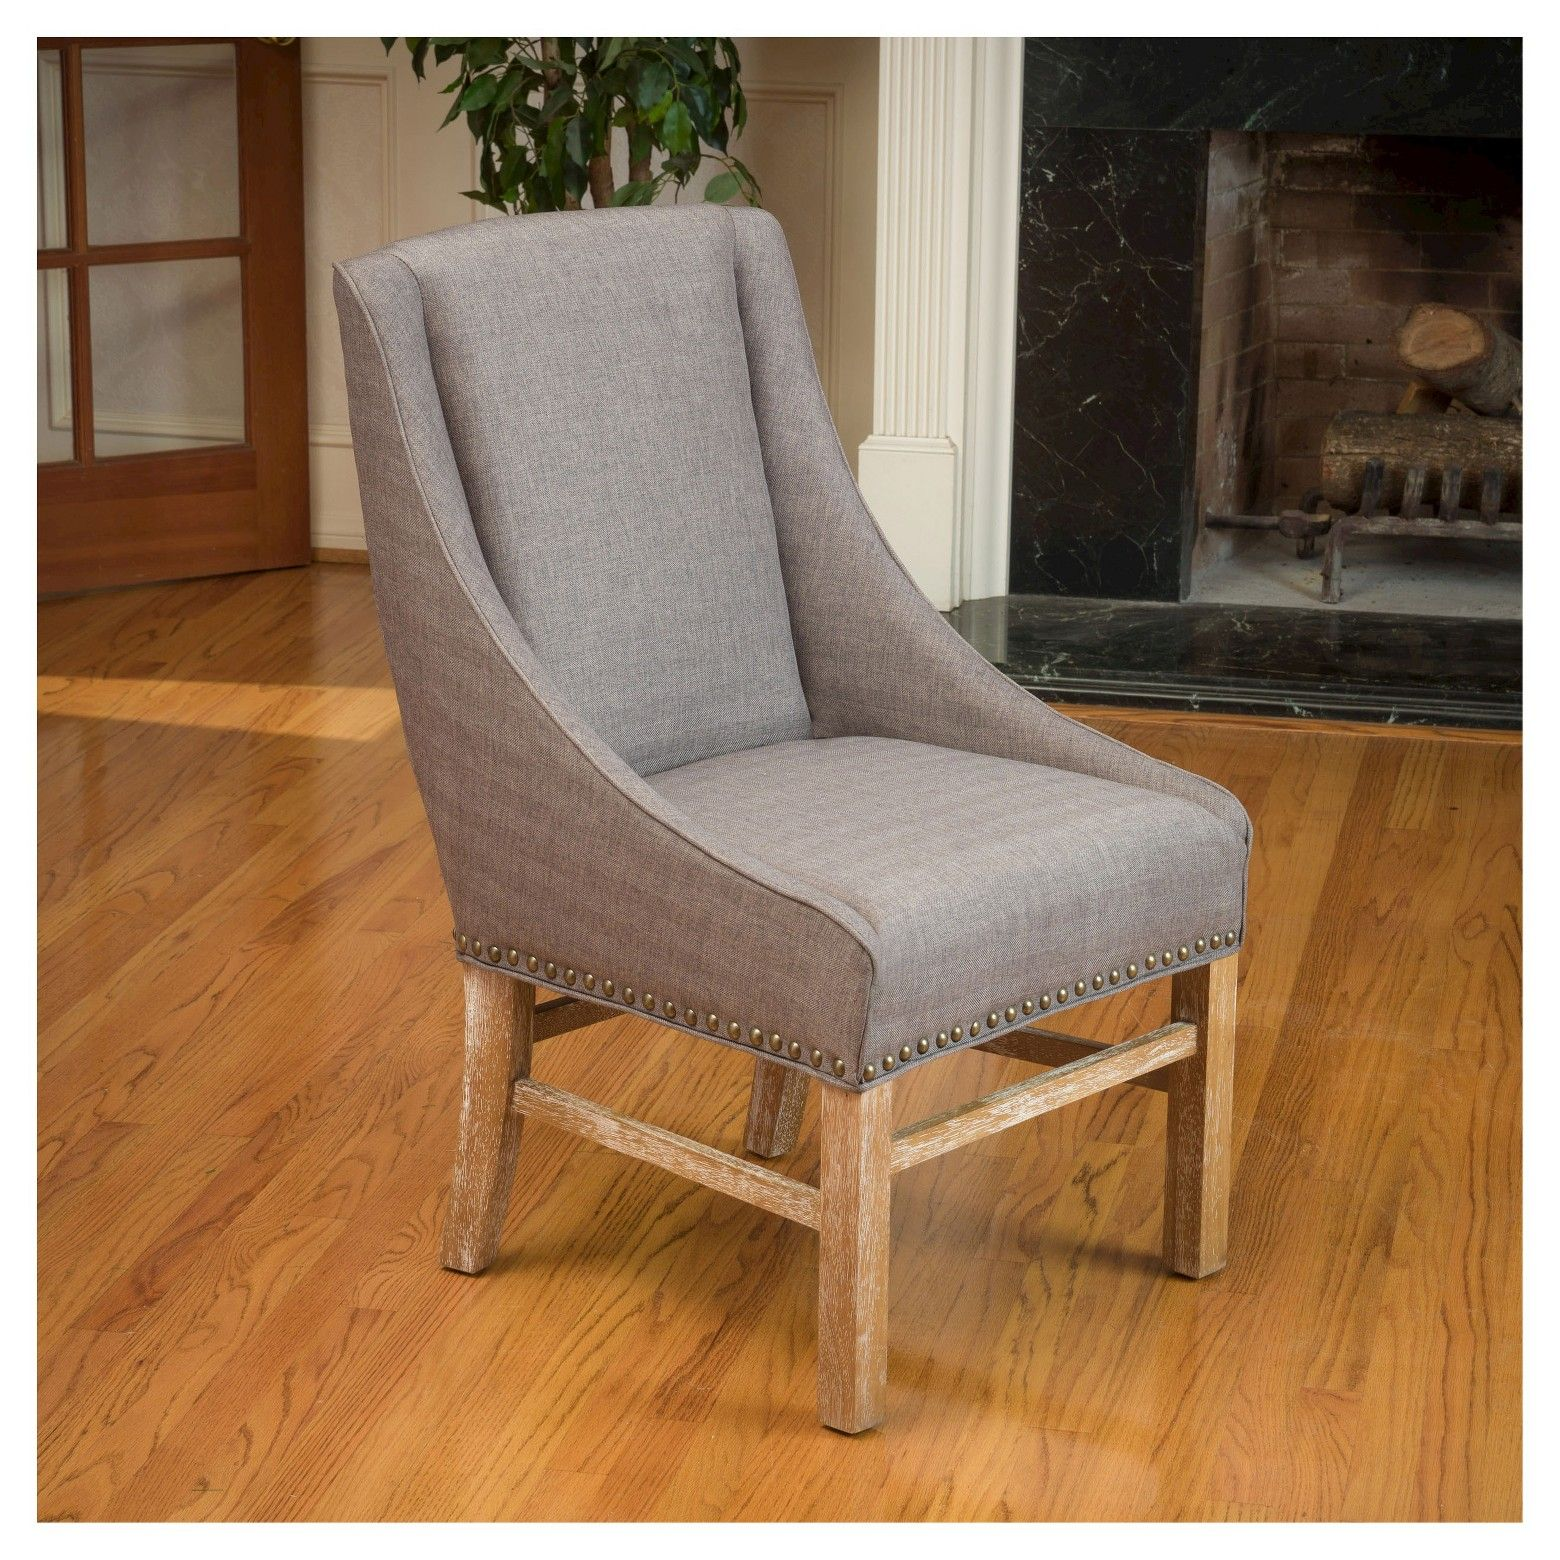 James Dining Chair Christopher Knight Home Dining Chairs Fabric Dining Chairs Farmhouse Dining [ 1560 x 1560 Pixel ]